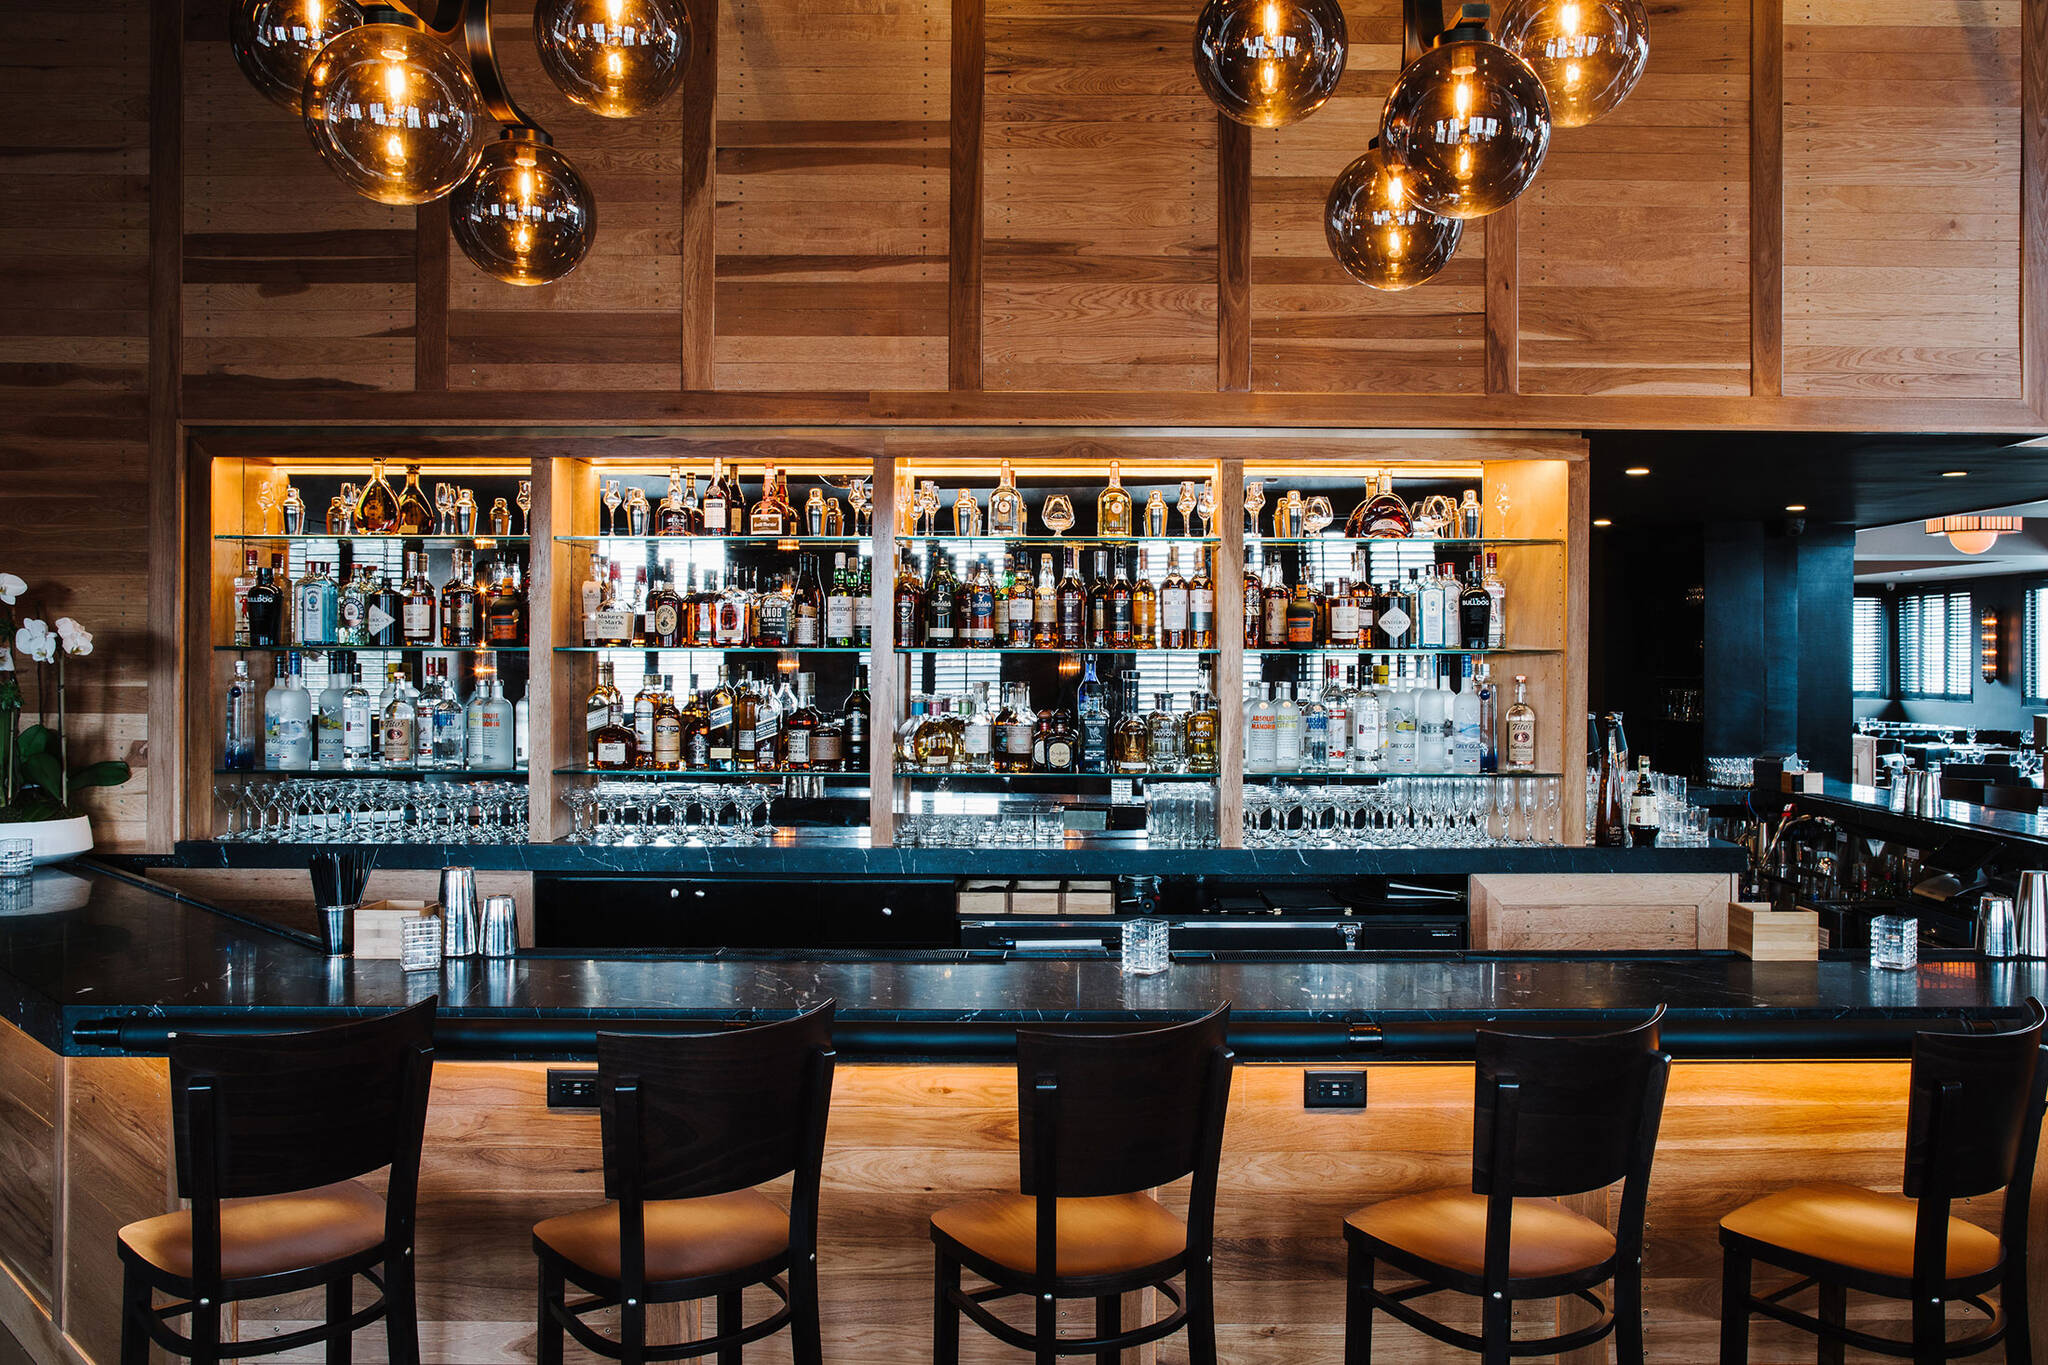 Bar of the American Cut Bar & Grill project located at 495 Sylvan Avenue in Englewood Cliffs, New Jersey designed by the architecture studio Danny Forster & Architecture